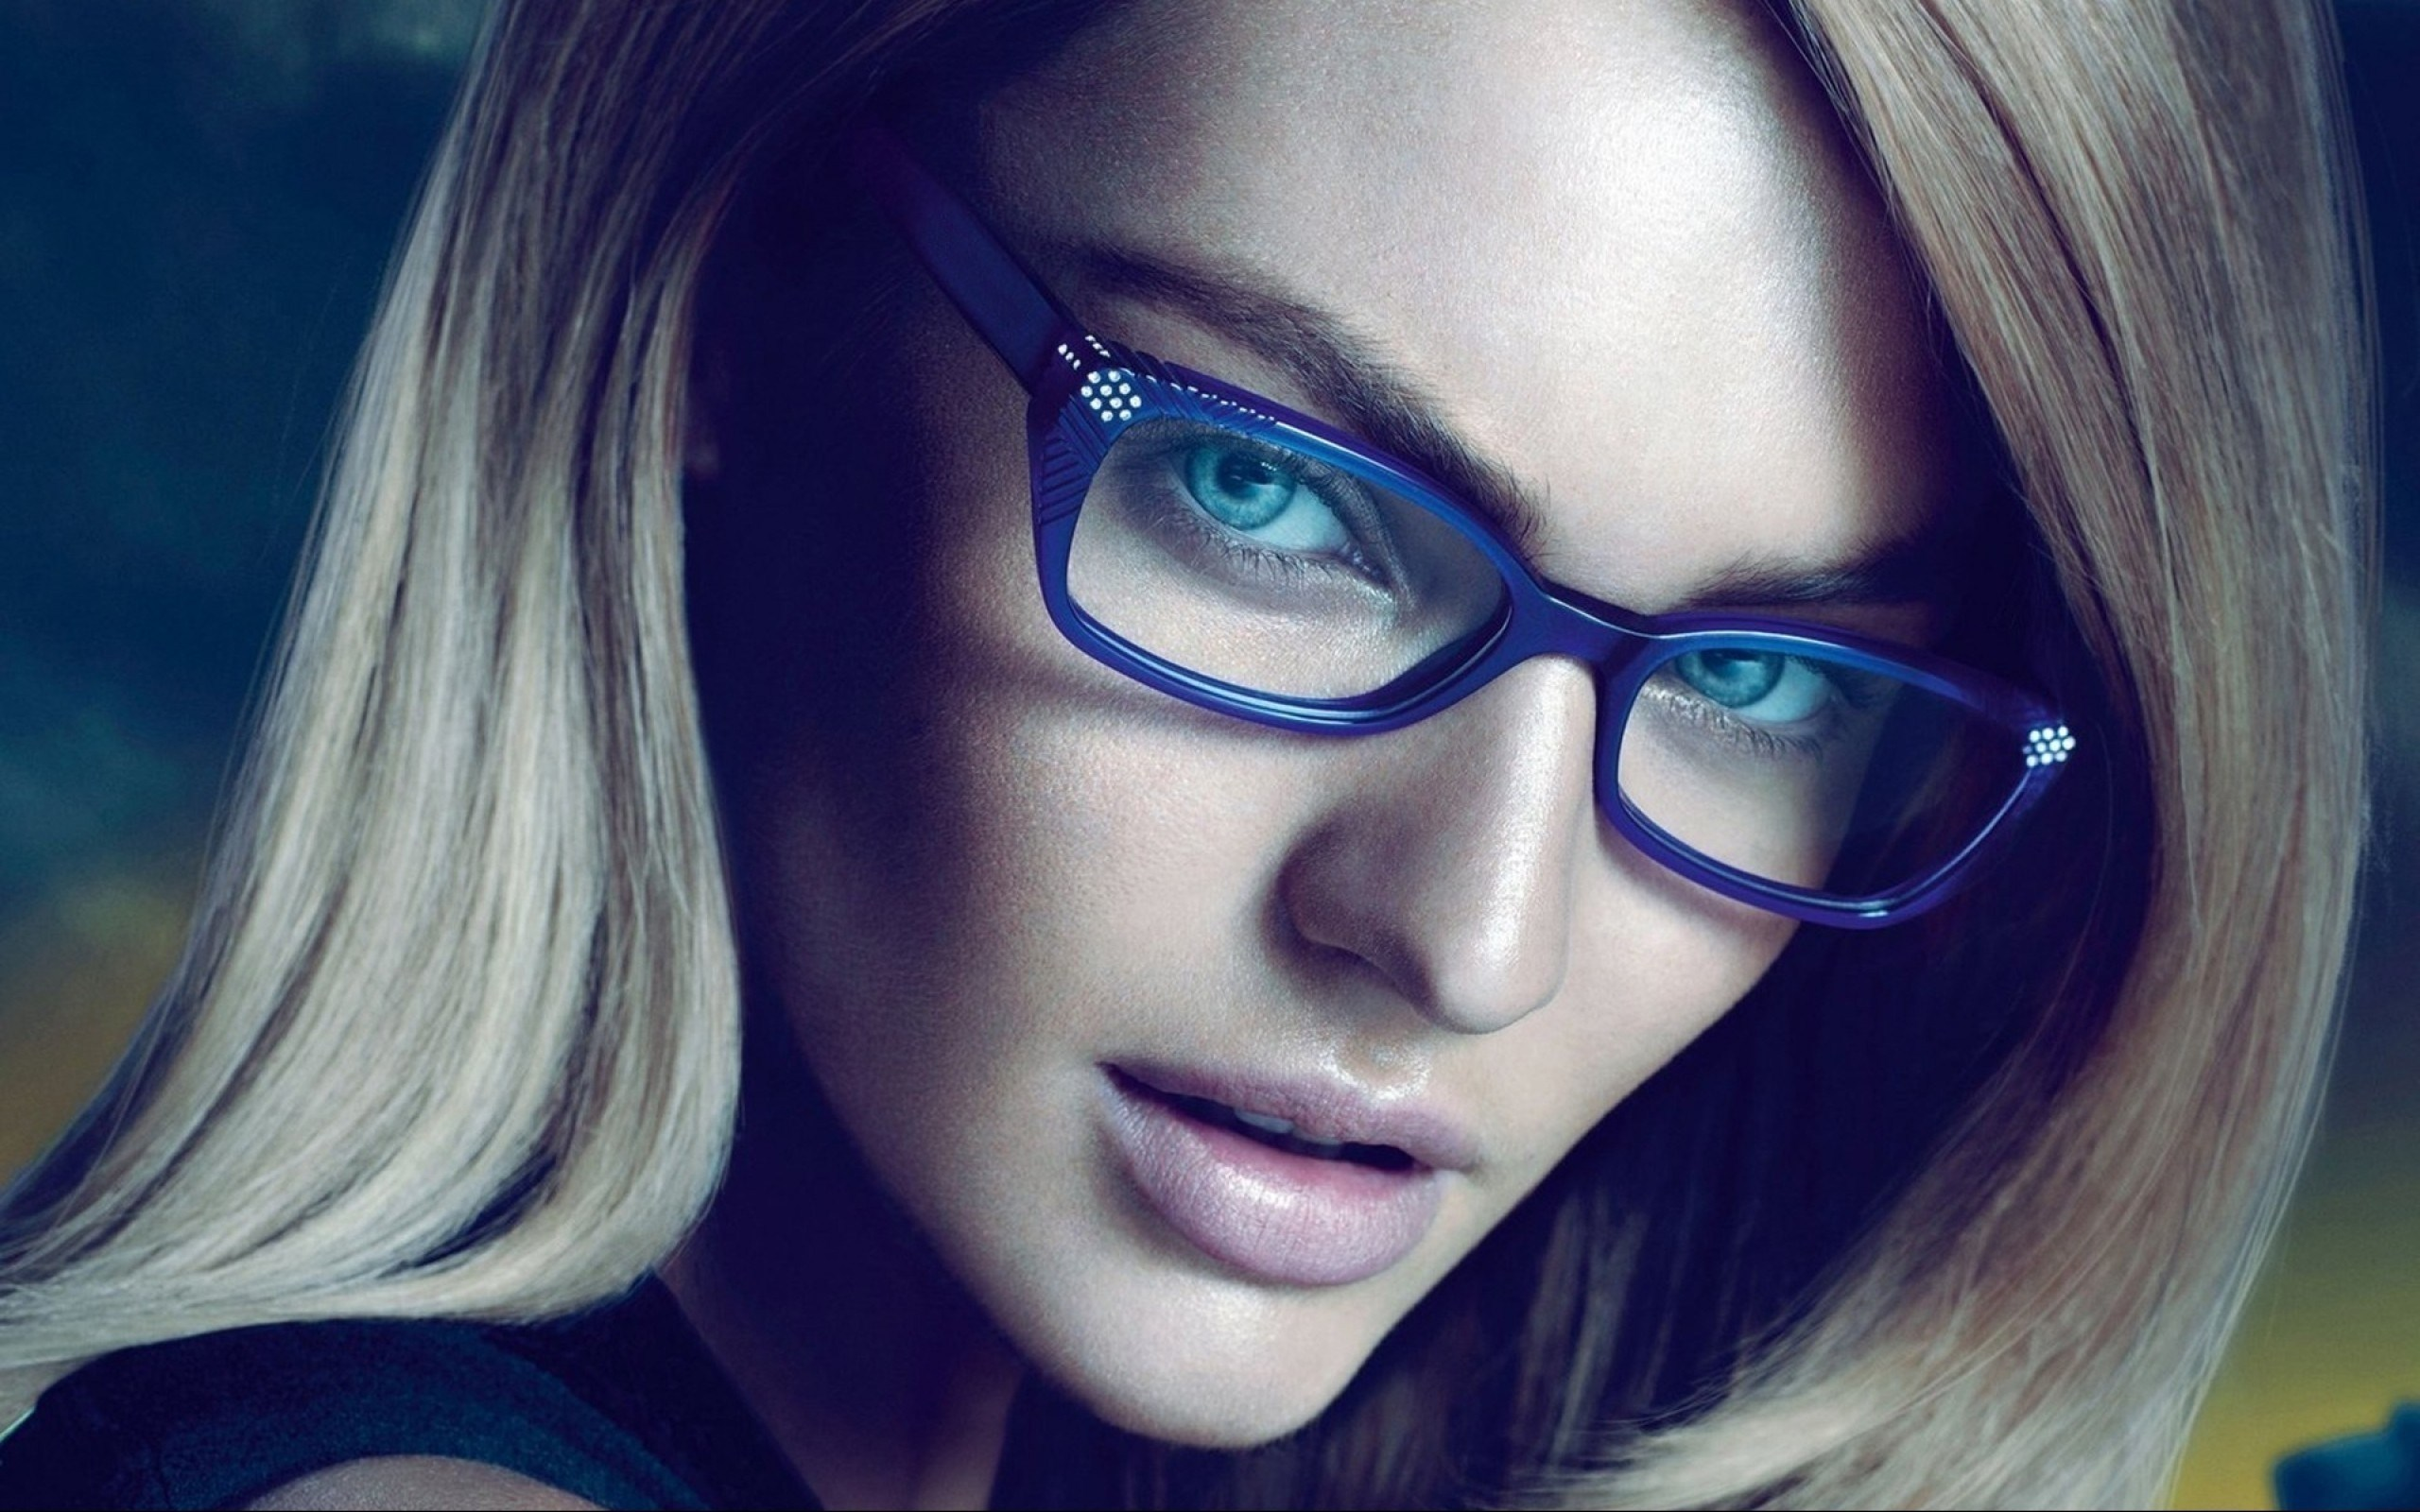 Blonde Girl Candice Swanepoel Portrait Glasses Photo